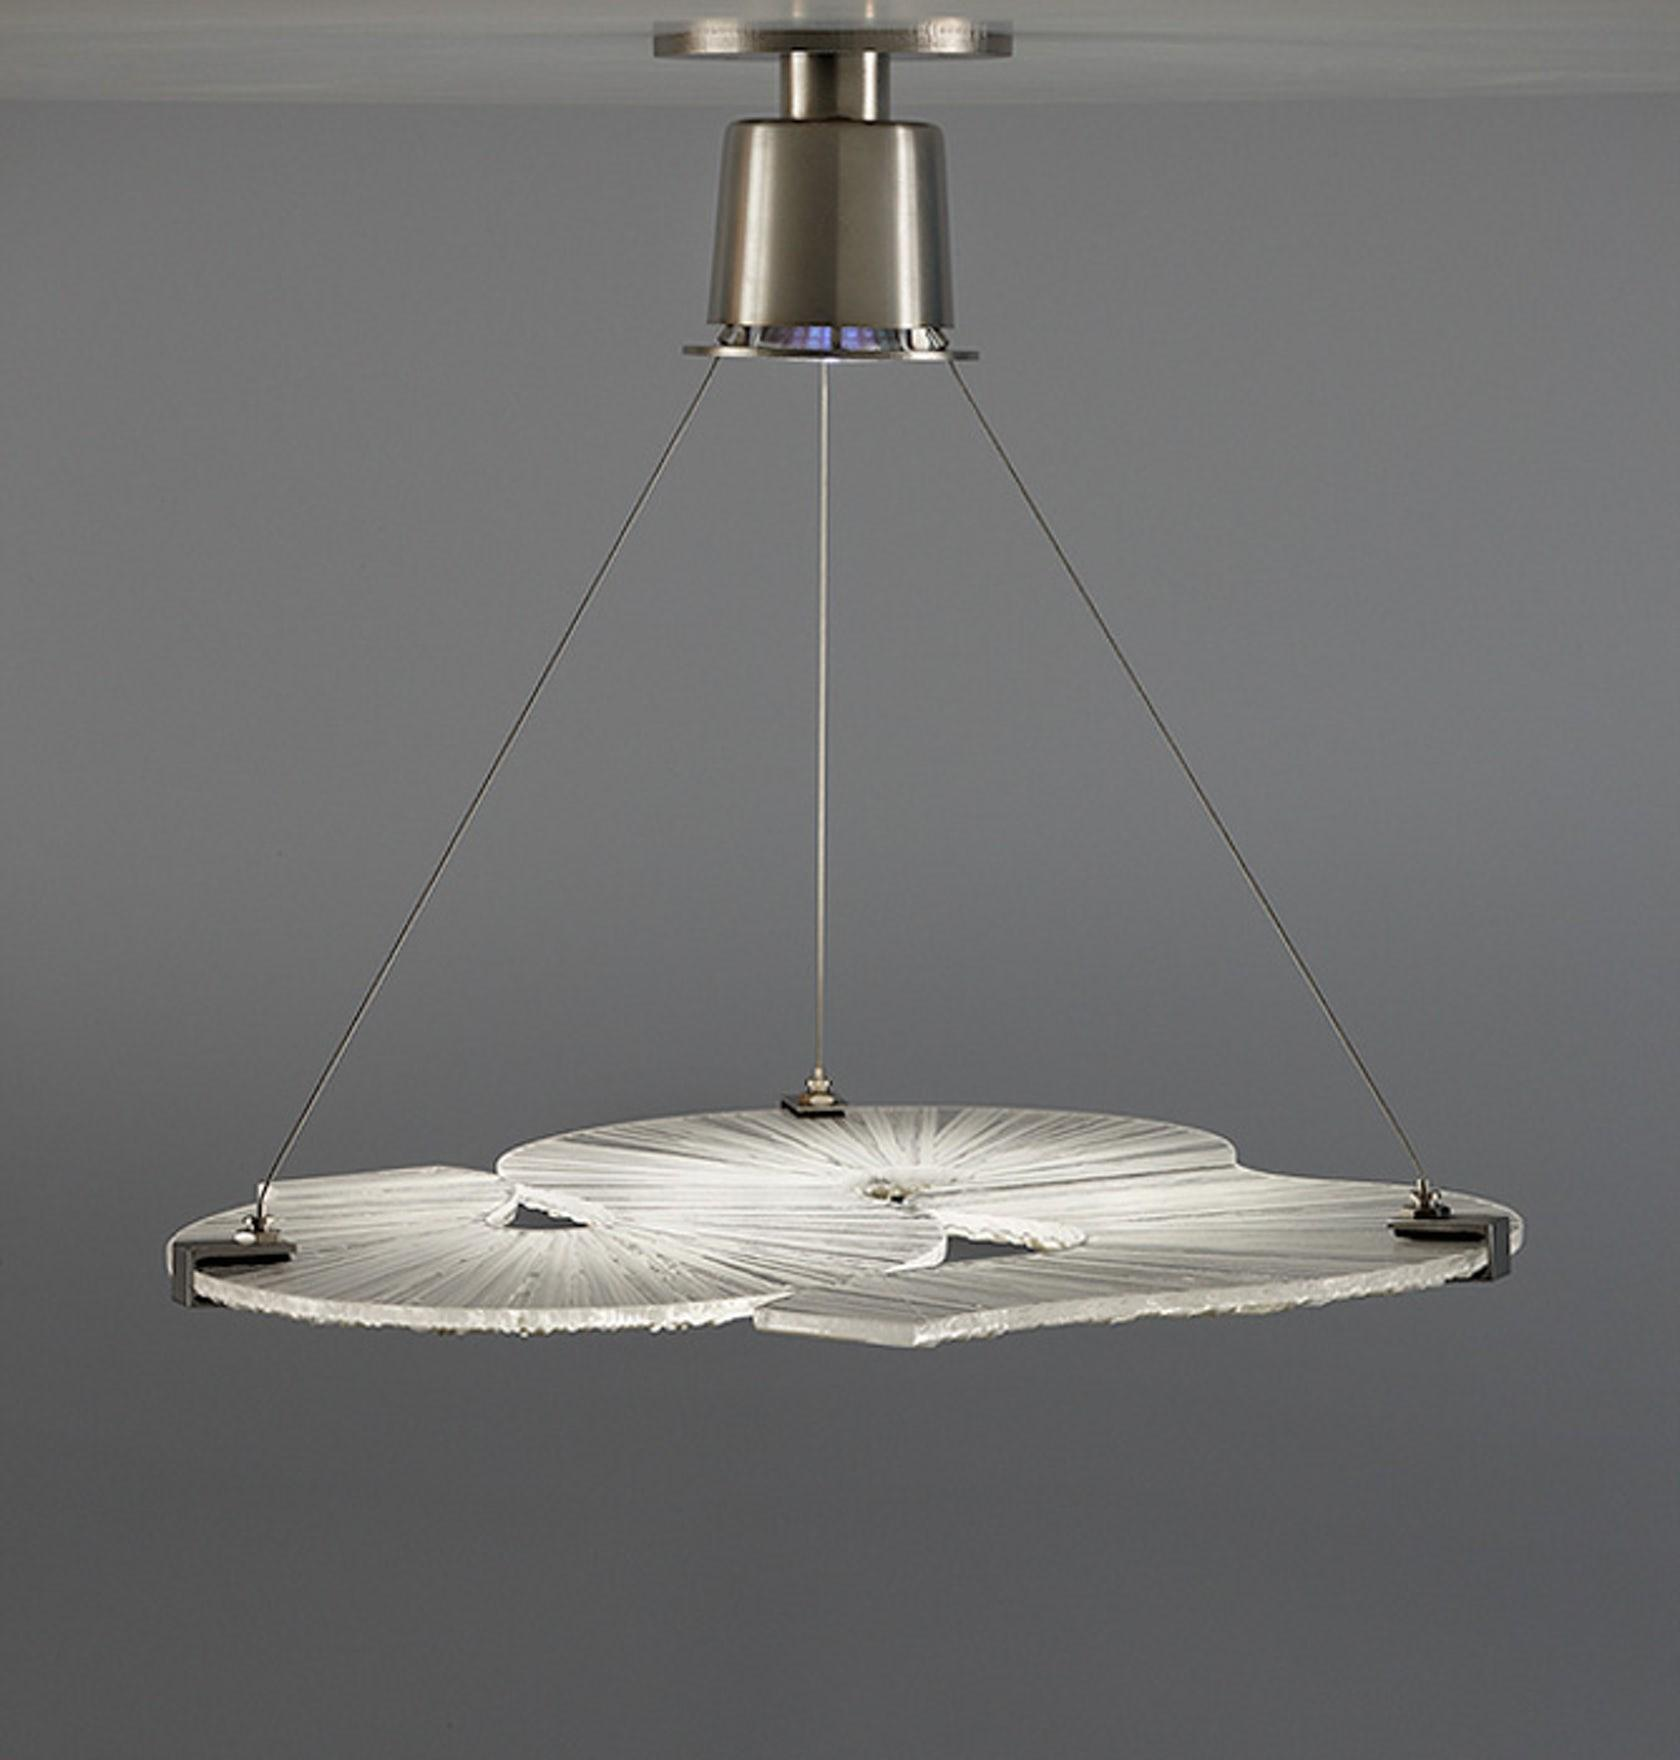 Skli Pendant Light Fixture Architizer